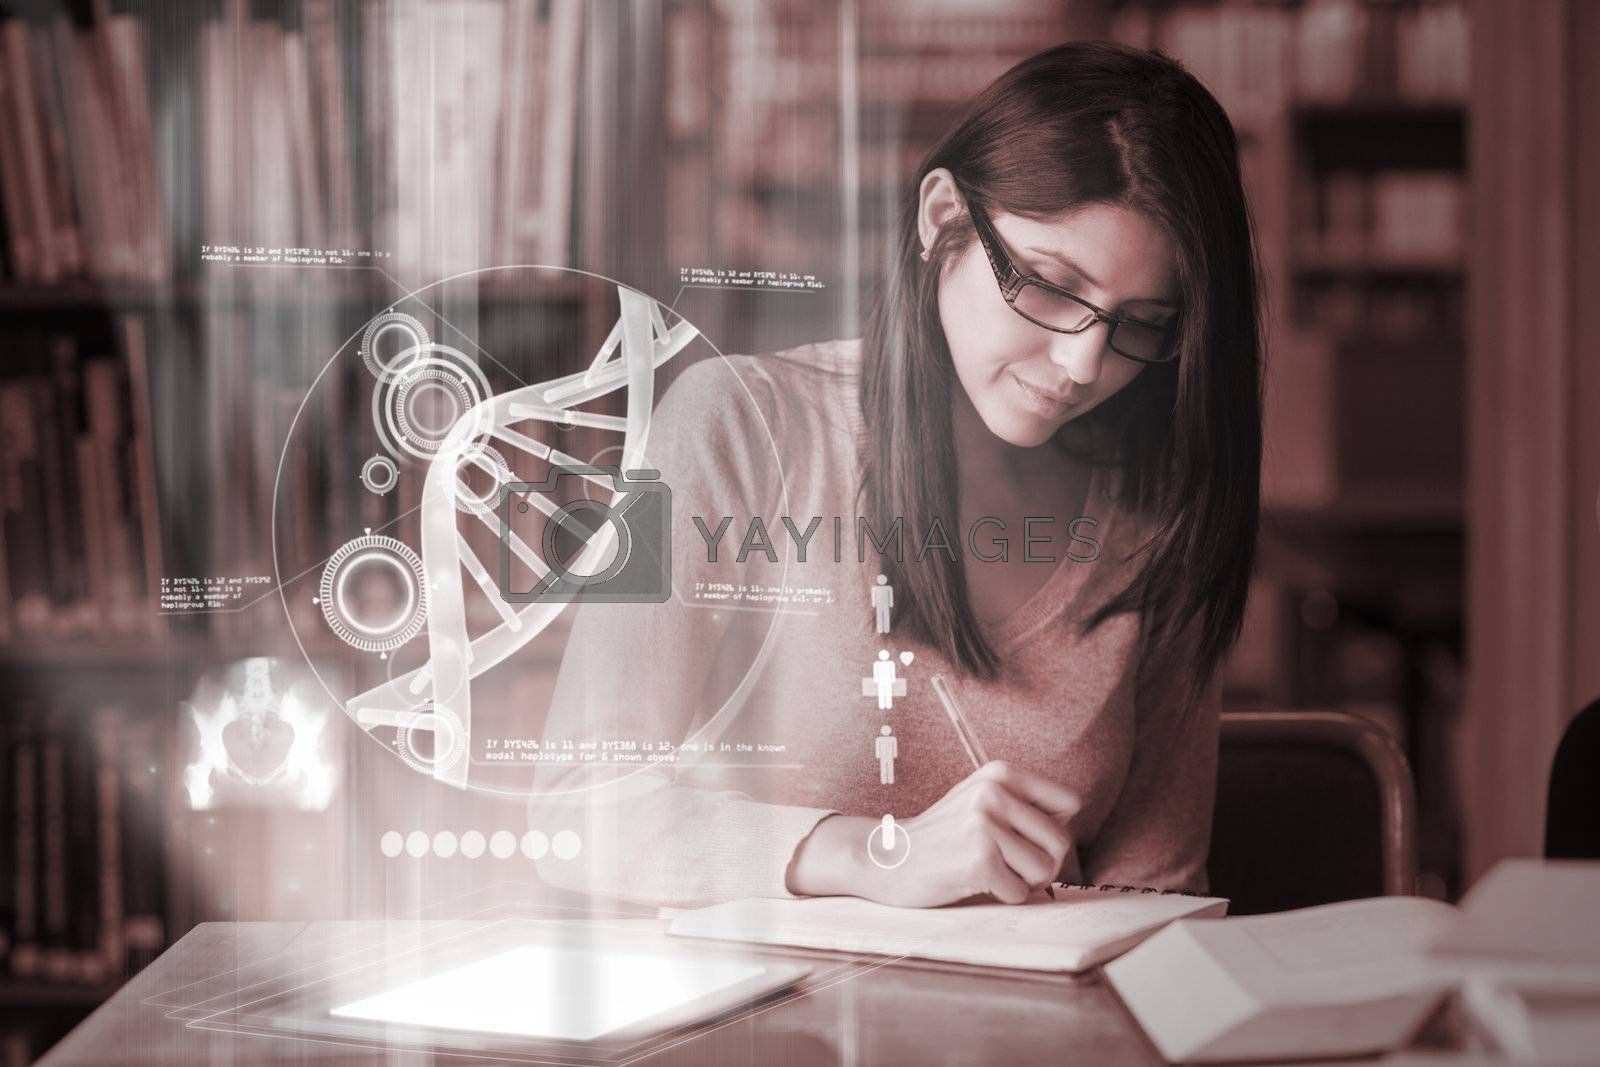 Concentrated mature student studying medicine on digital interface by Wavebreakmedia